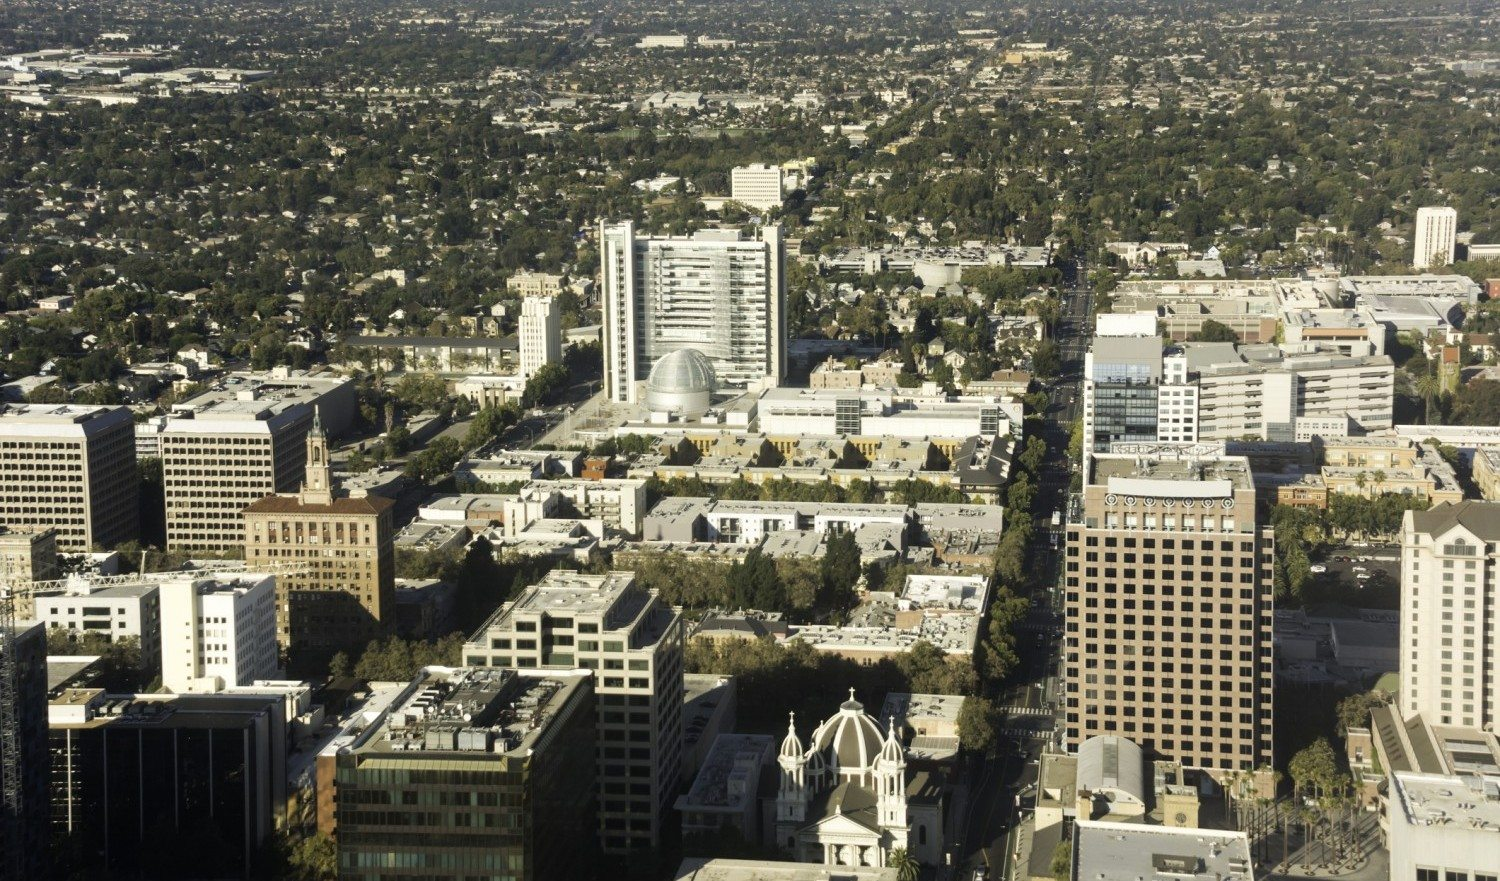 A view of the downtown area of San Jose California.